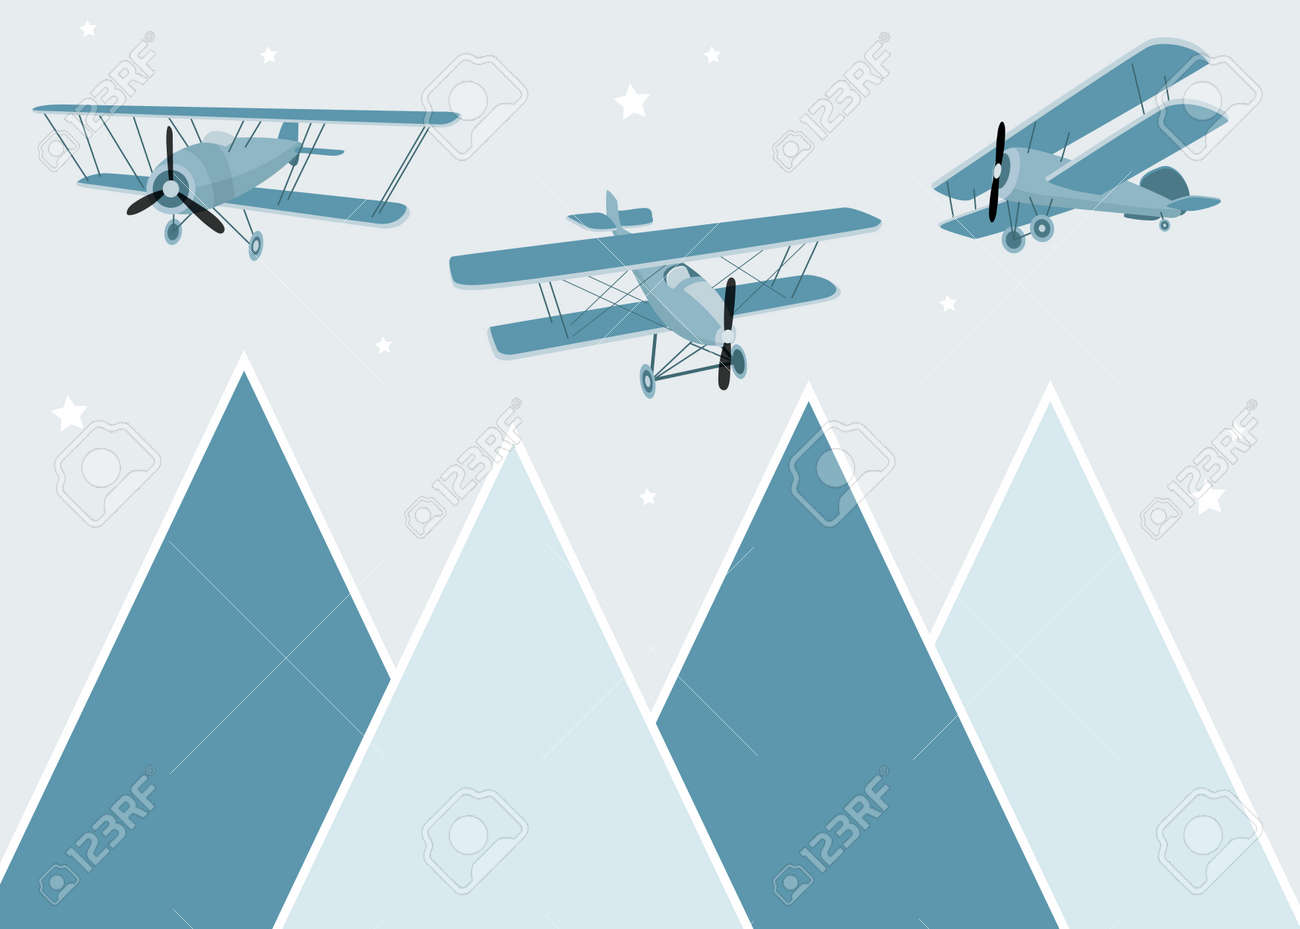 Vector color children hand drawn mountain, aircraft, plane and clouds illustration in scandinavian style. Mountain landscape. Childrens wallpaper. Mountainscape, childrens room design, wall decor. - 169317772